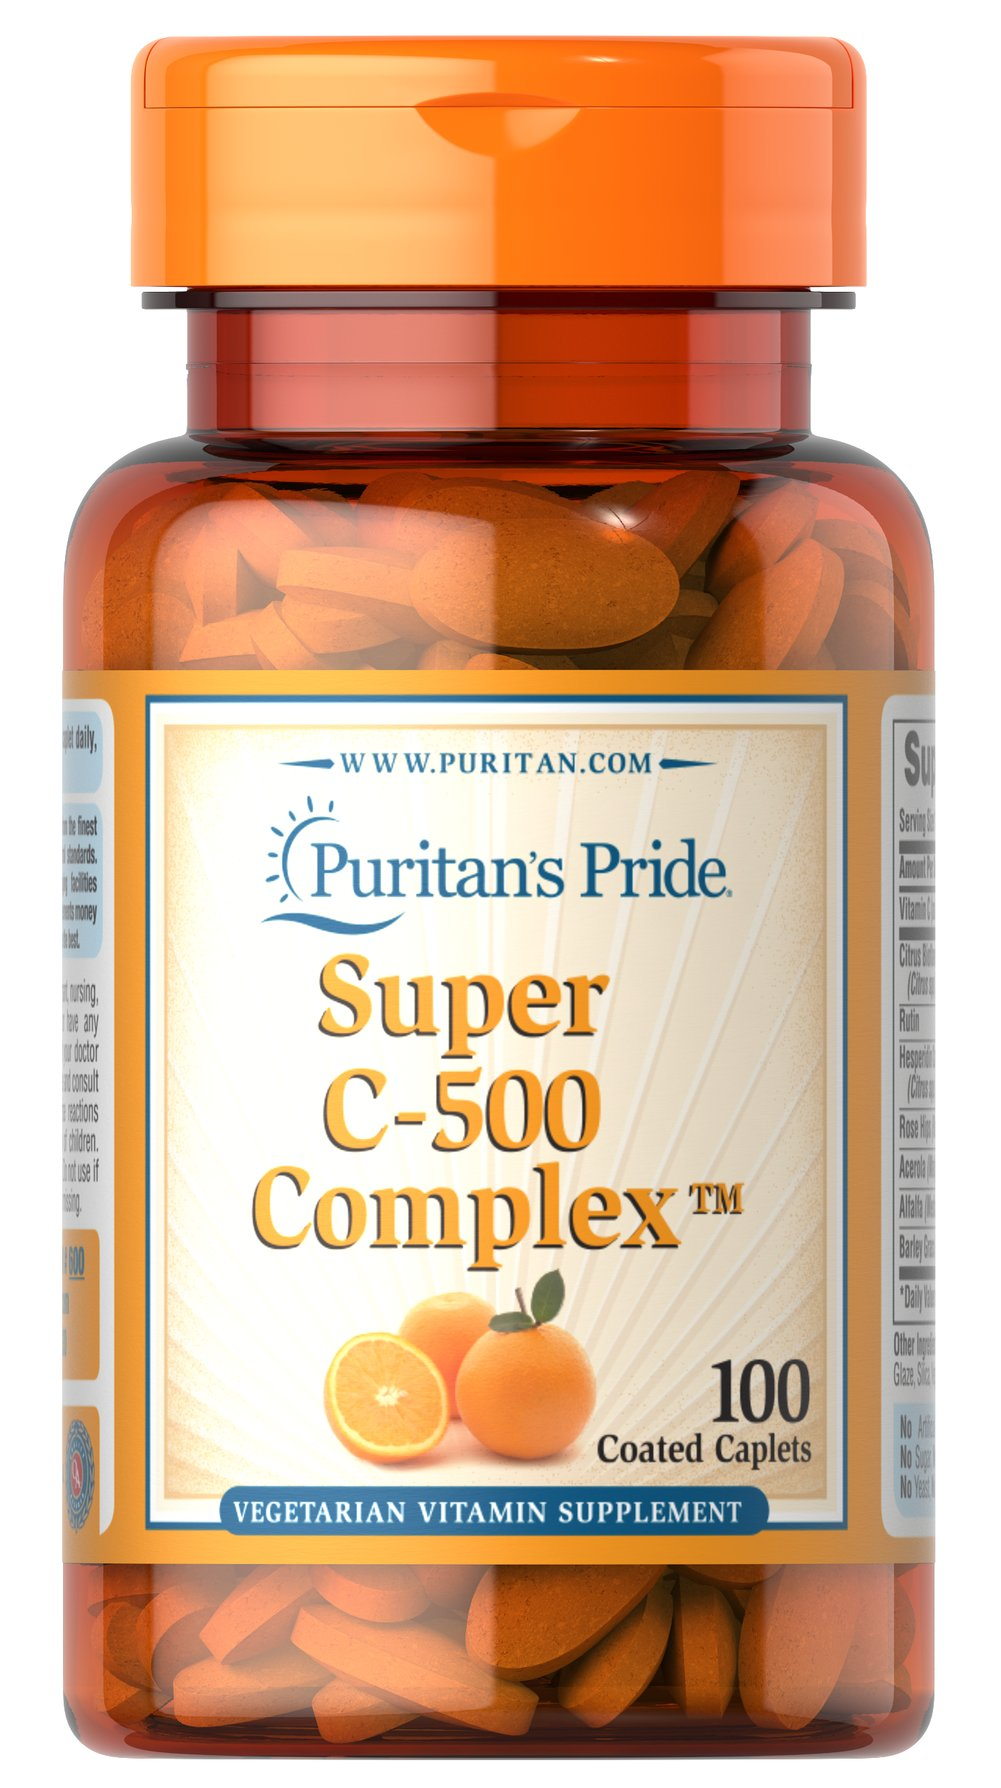 Vitamin C-500 Complex <p>Vitamin C  is essential to many functions in the body and is one of the leading vitamins for immune support.** Our C-complex includes potent Vitamin C as Ascorbic Acid. We also include Citrus Bioflavonoids, Rose Hips, Rutin, and Acerola.**</p><p>Offers superior antioxidant support.**</p><p>Supports healthy immune function and promotes well-being.**</p> 100 Coated Caplets 500 mg $10.99